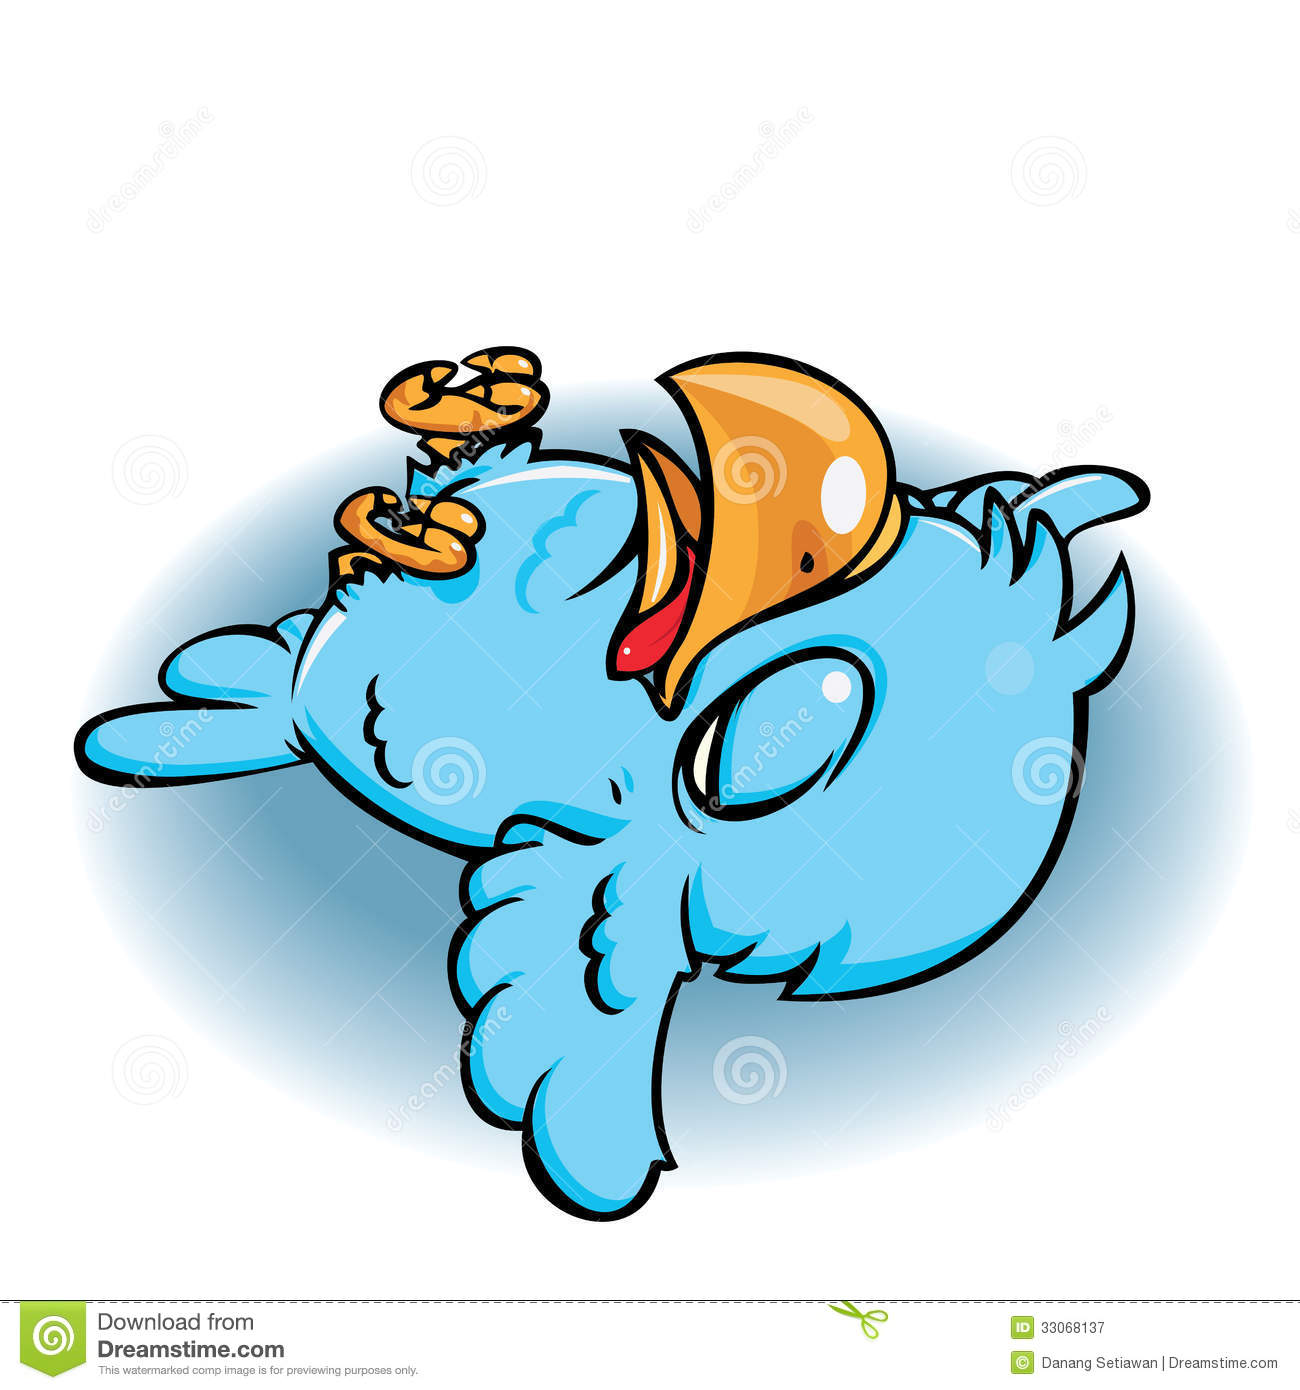 dead blue bird stock vector image of cute  information 33068137 thumbs down emoji clipart thumbs up down side clipart